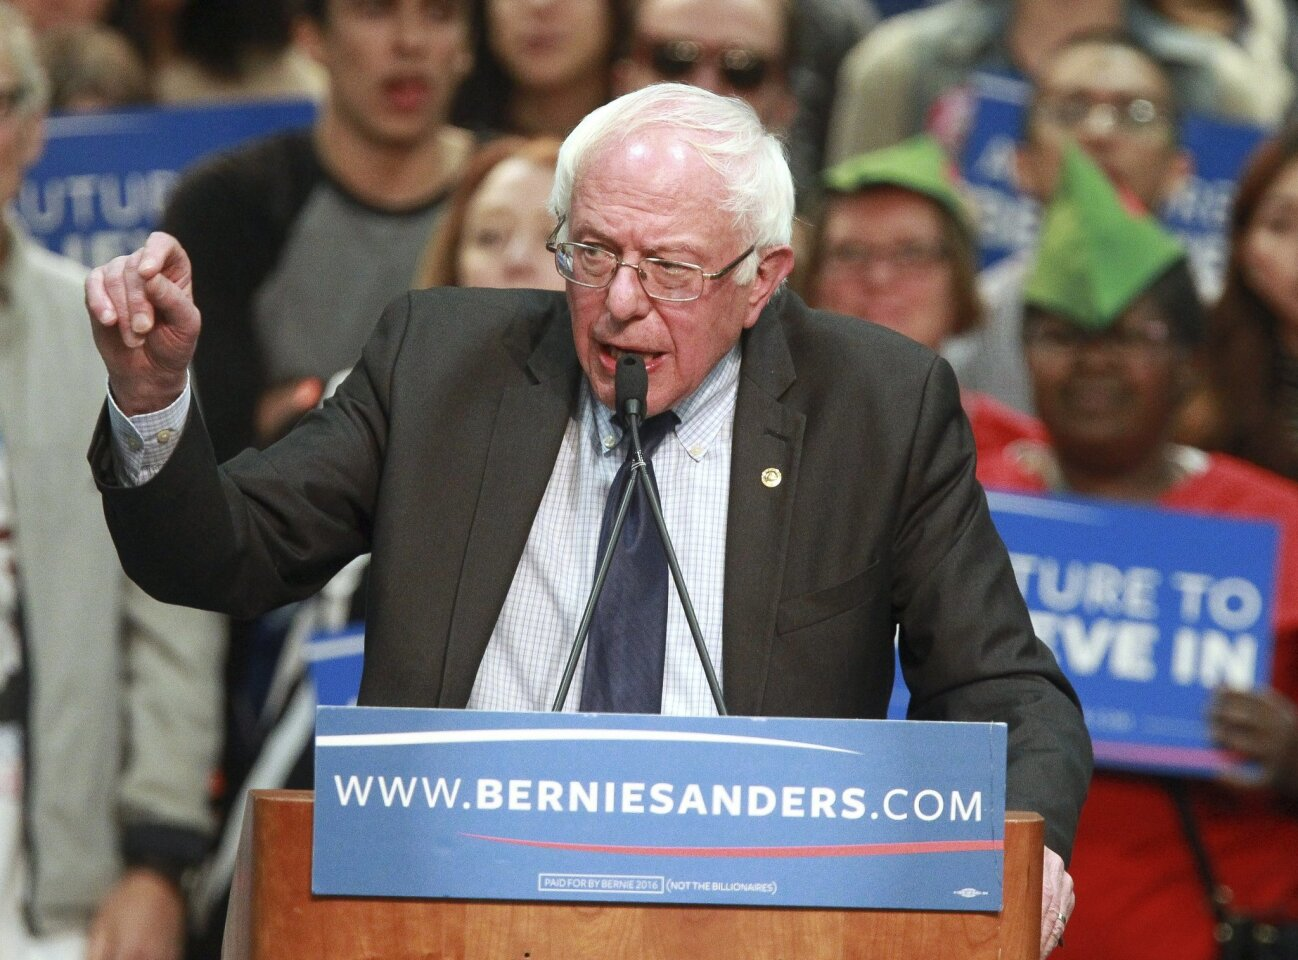 Democratic presidential candidate Bernie Sanders speaks to a crowd of supporters.